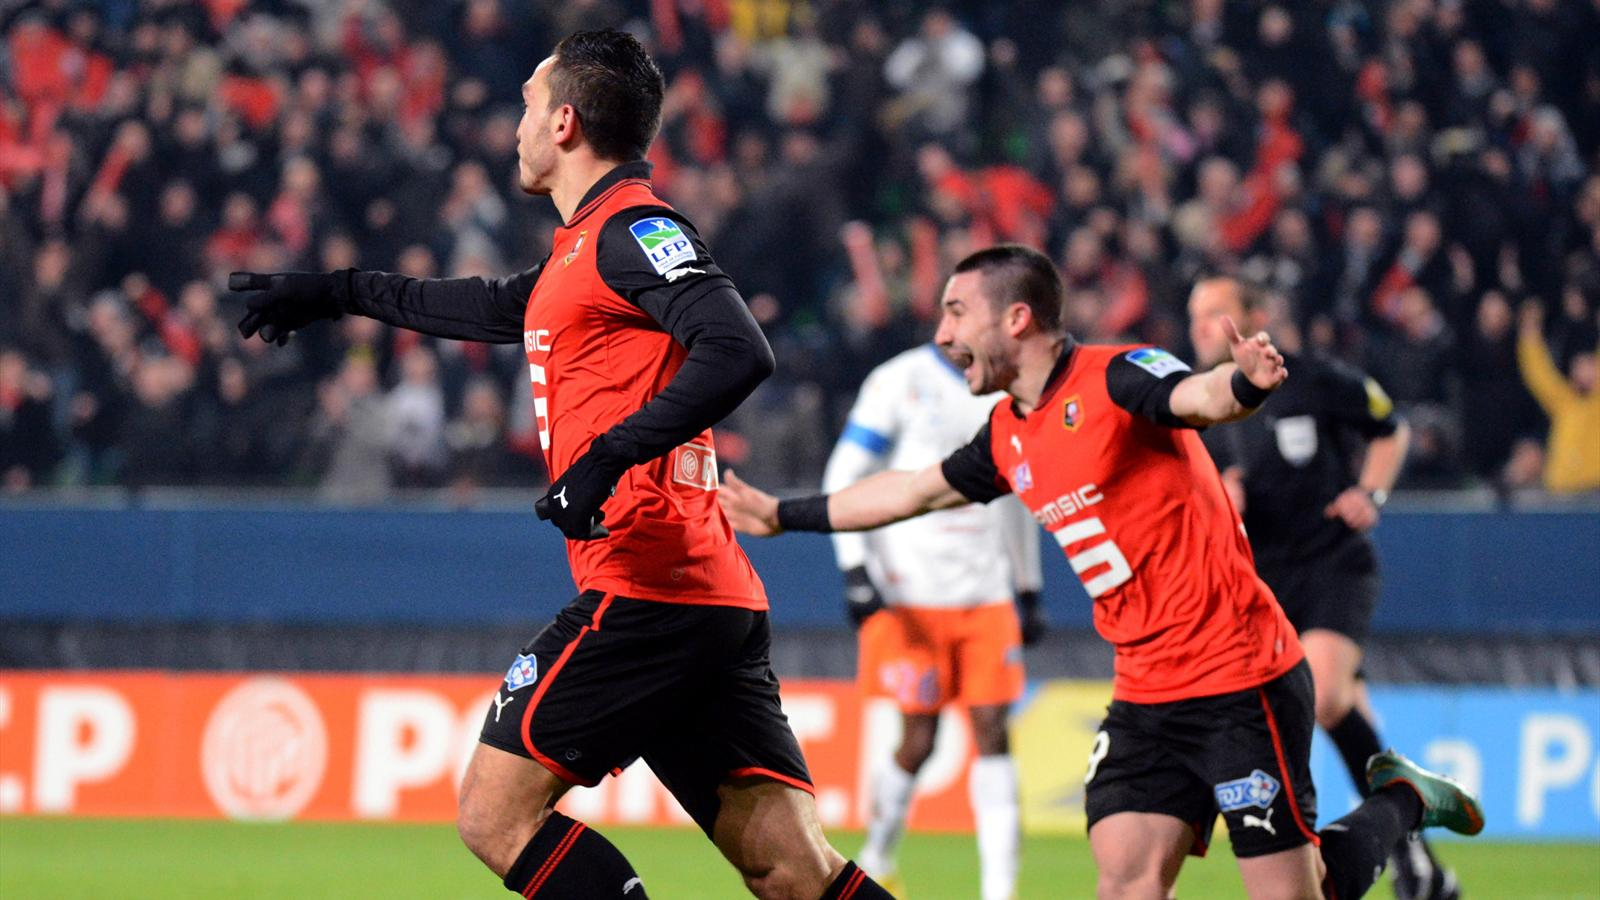 Coupe de la ligue le srfc a exorcis quevilly coupe de la ligue 2012 2013 football eurosport - Coupe de la ligue 2013 14 ...